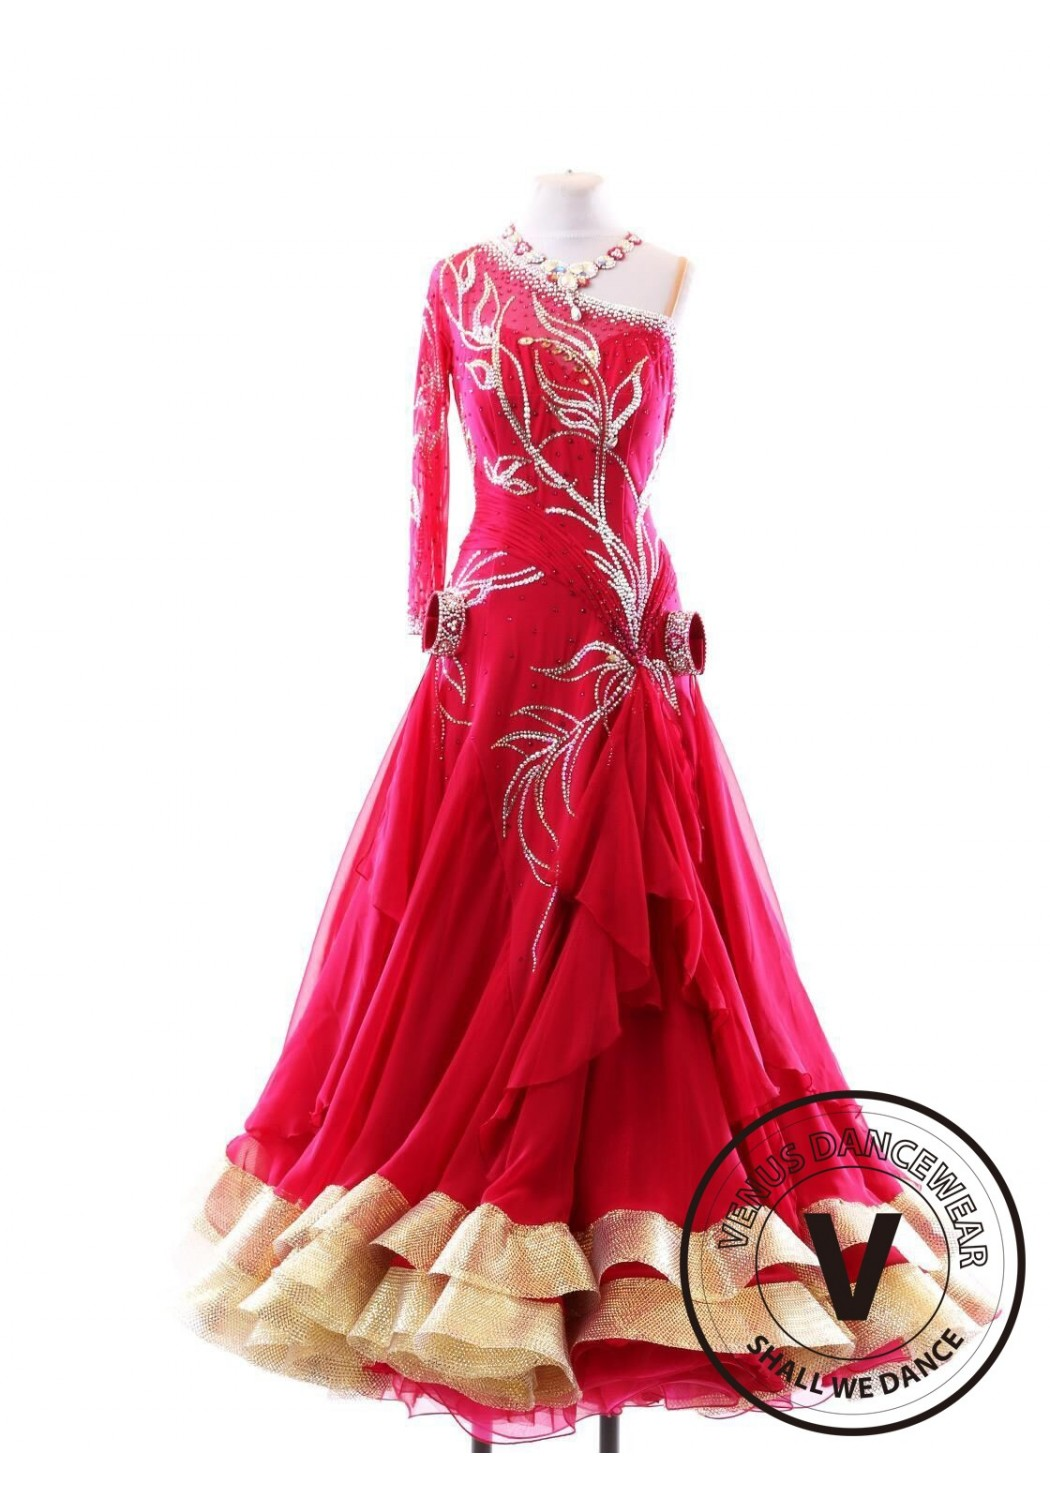 World Class Ballroom Competition Gown S123